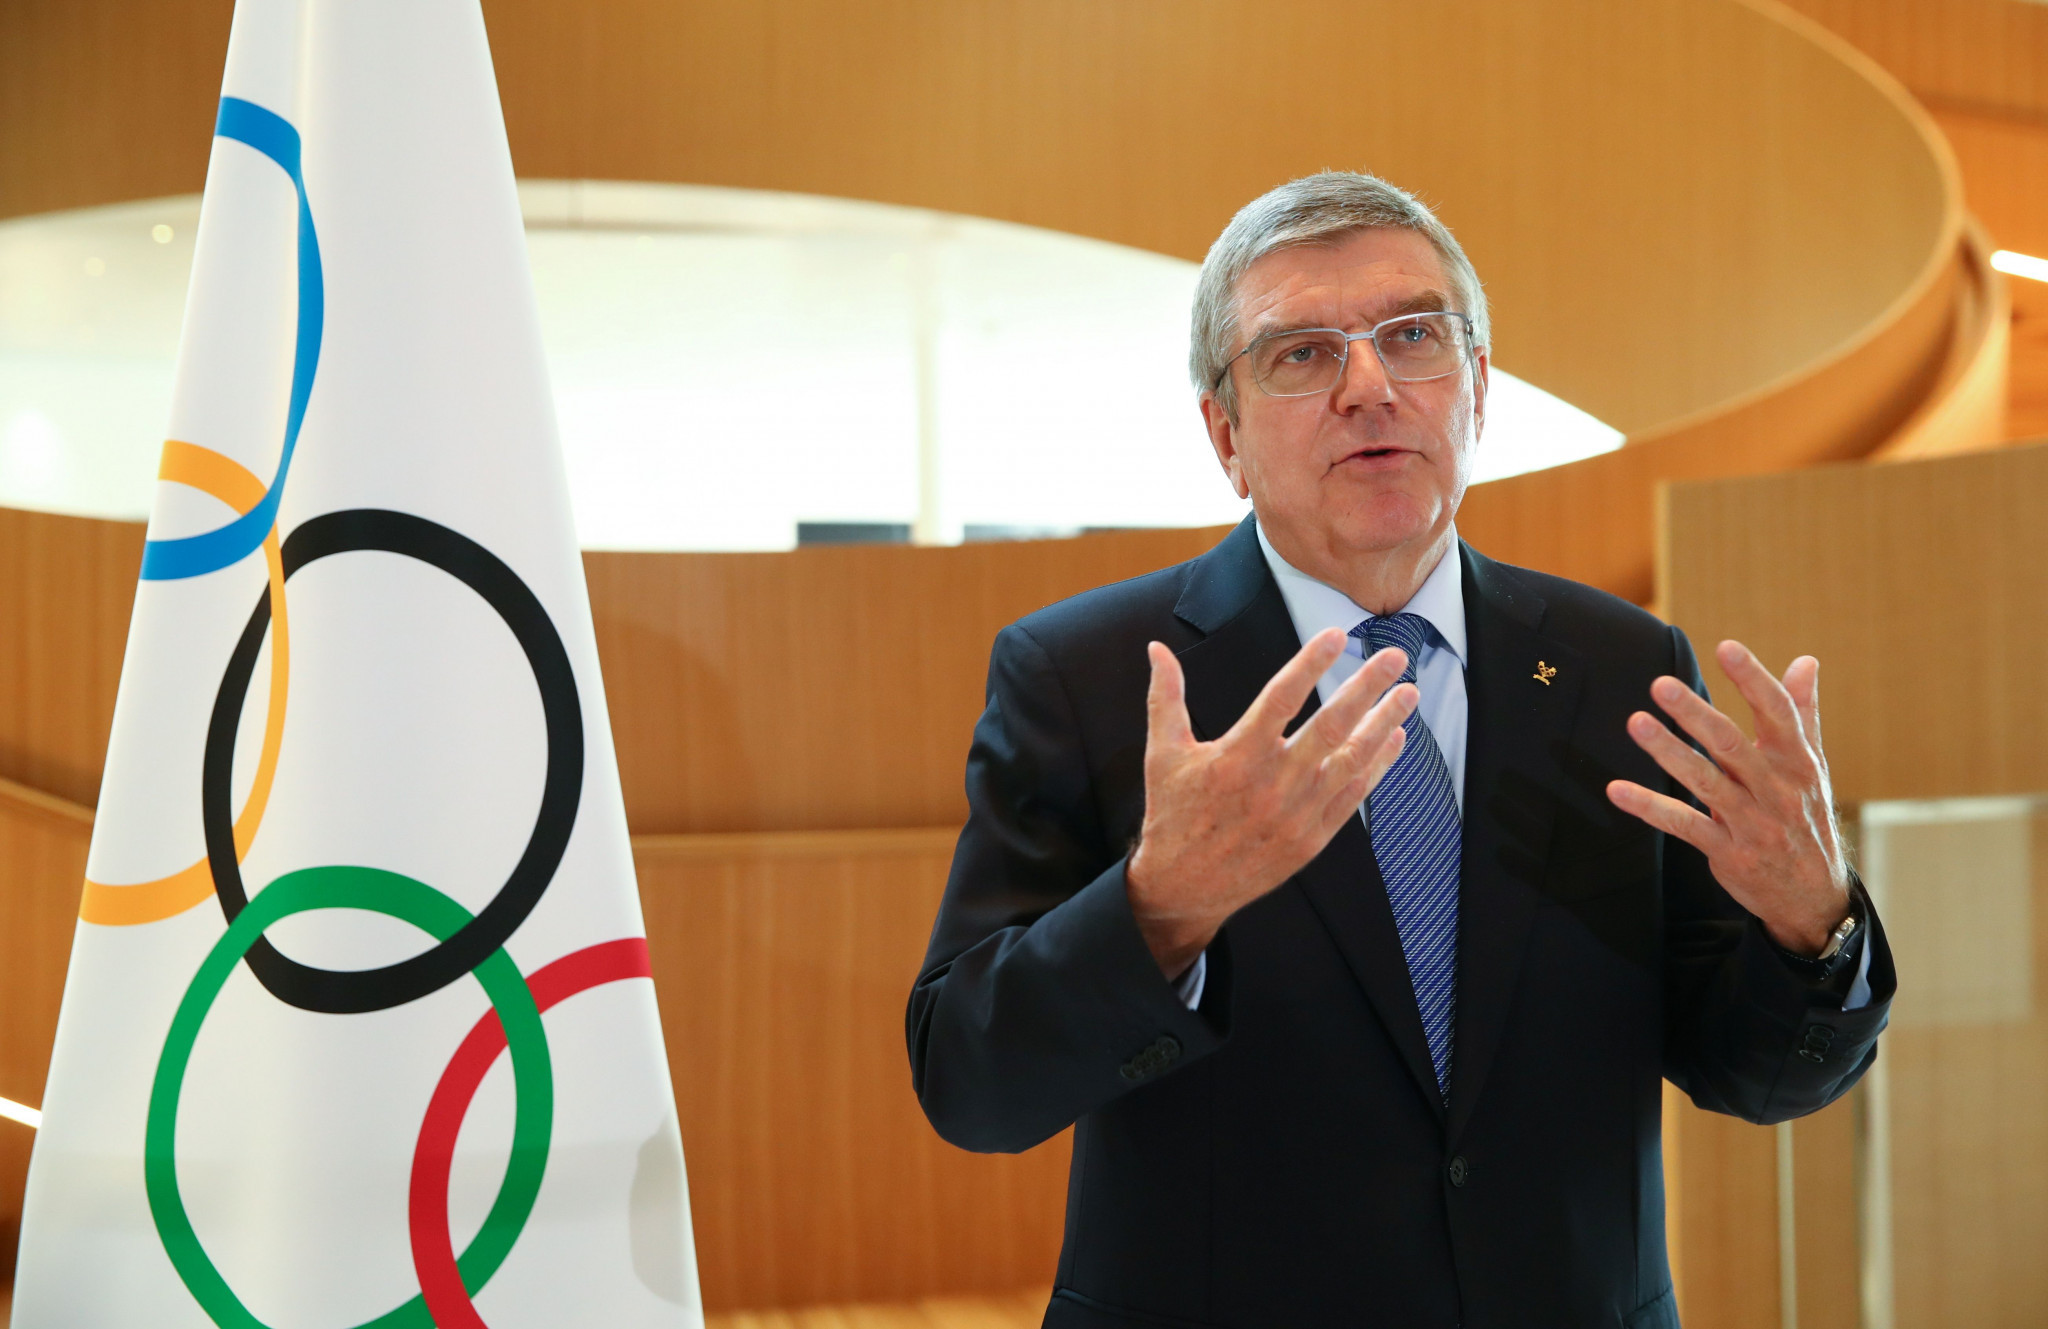 IOC President Thomas Bach was criticised for his handling of the postponement of Tokyo 2020 ©Getty Images